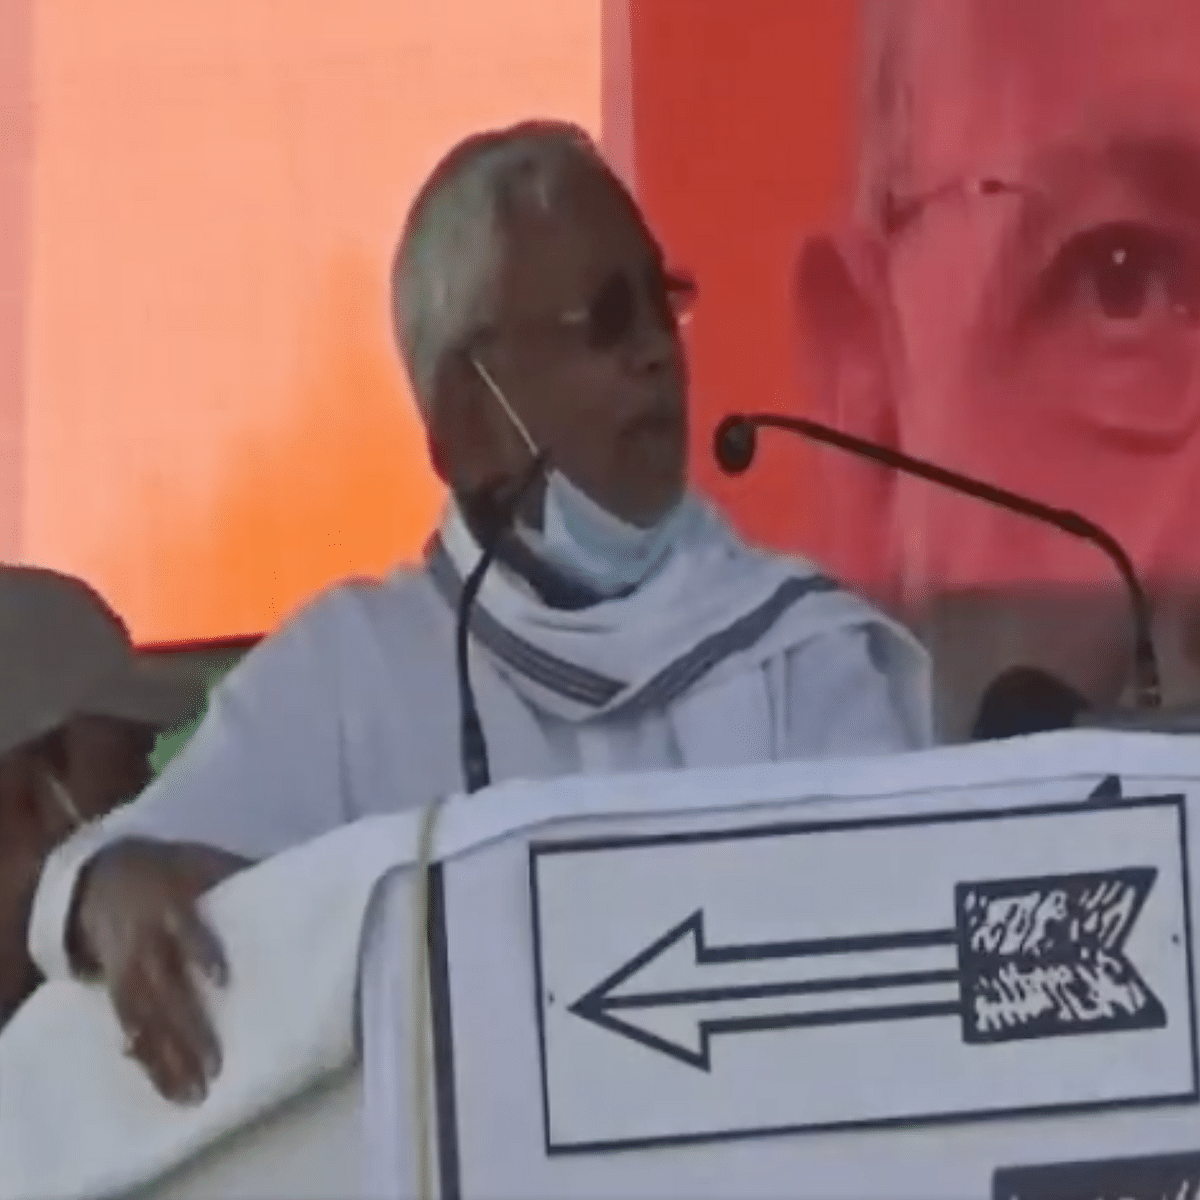 WATCH: 'Nitish Kumar is a thief, has eaten MNREGA money,' slogans raised at Bihar CM's rally